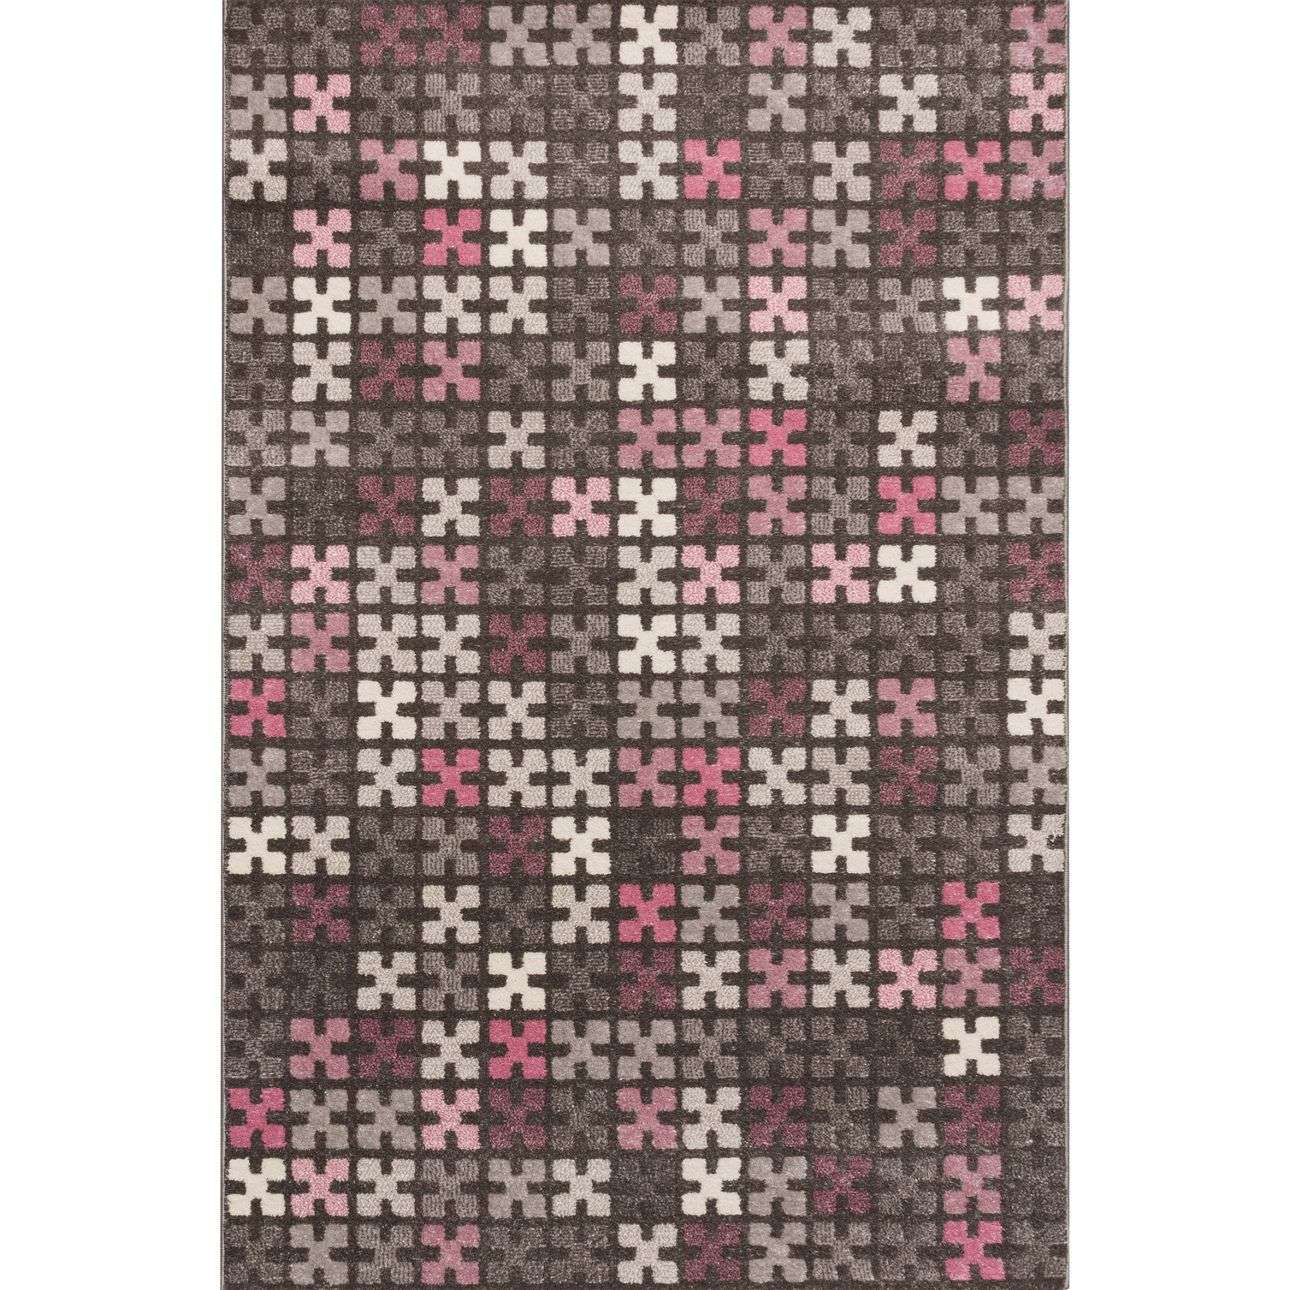 Teppich Puzzle Teppich Modern Puzzle Charisma Rose Frost Grey 135x190cm